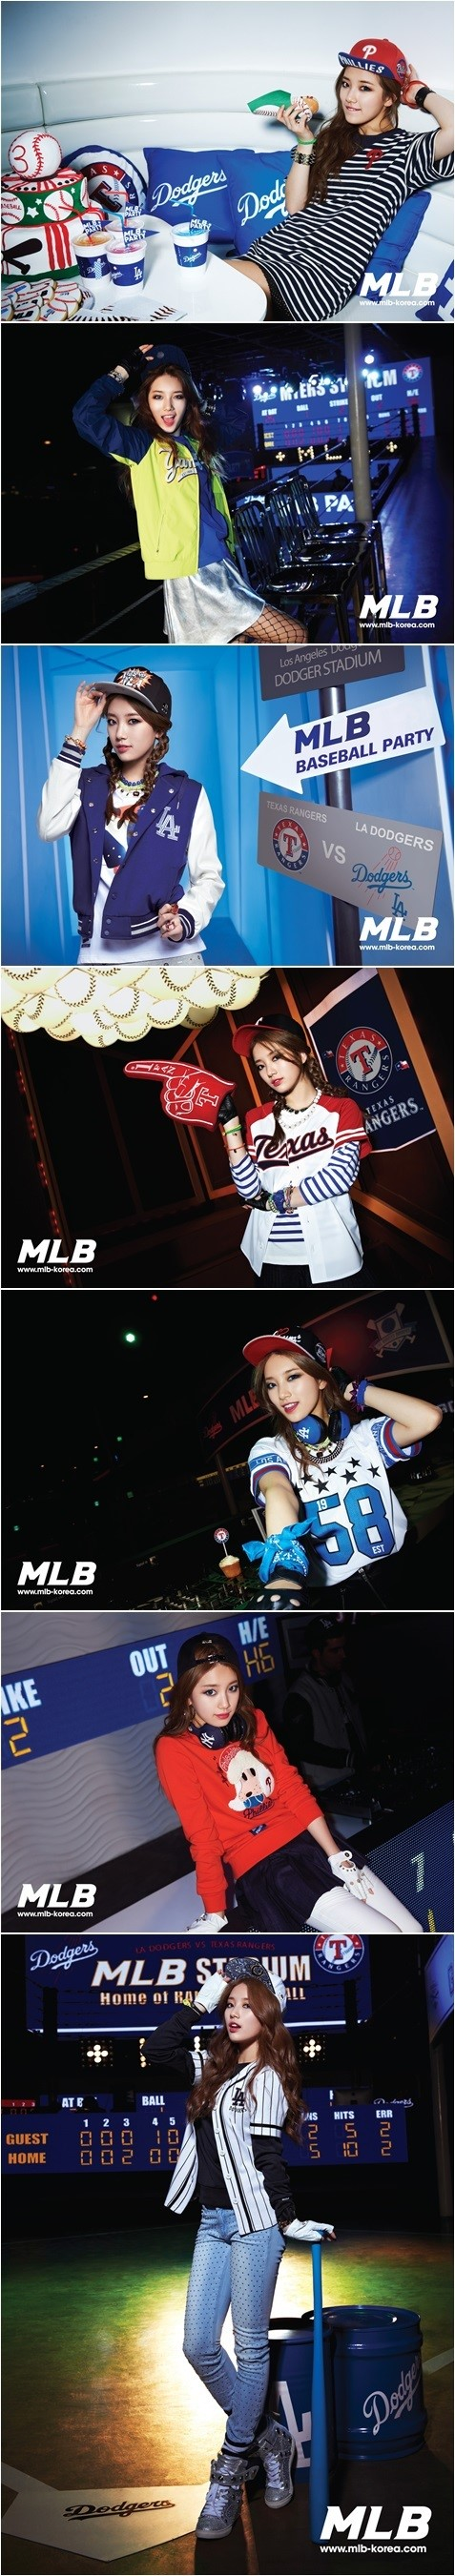 suzy_mlb_photos